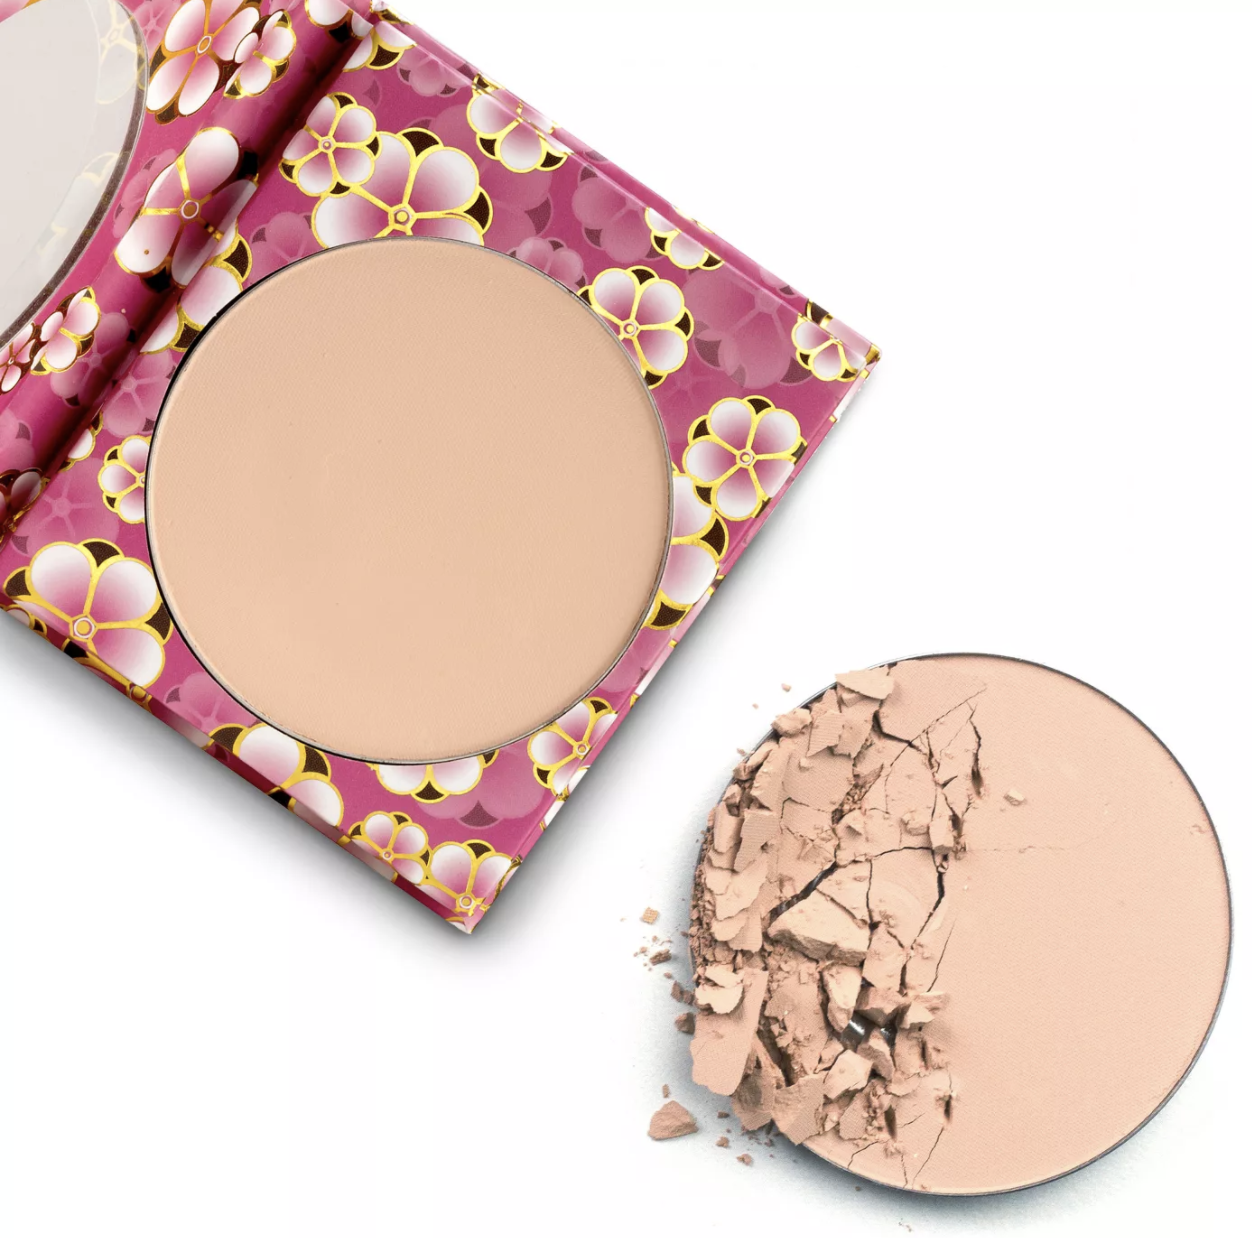 the translucent powder in pink floral packaging